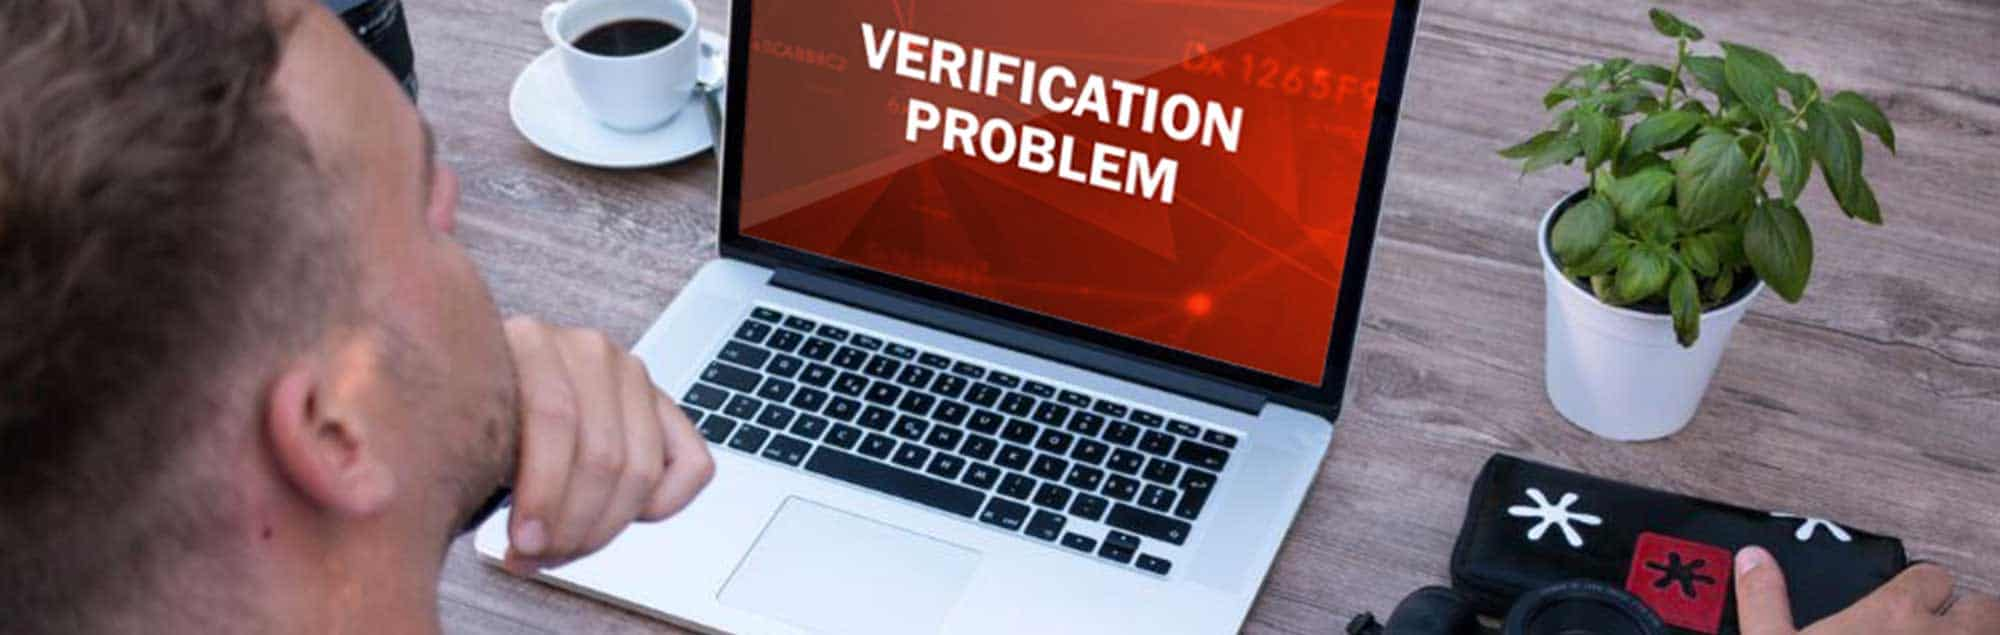 verification problem of the platform